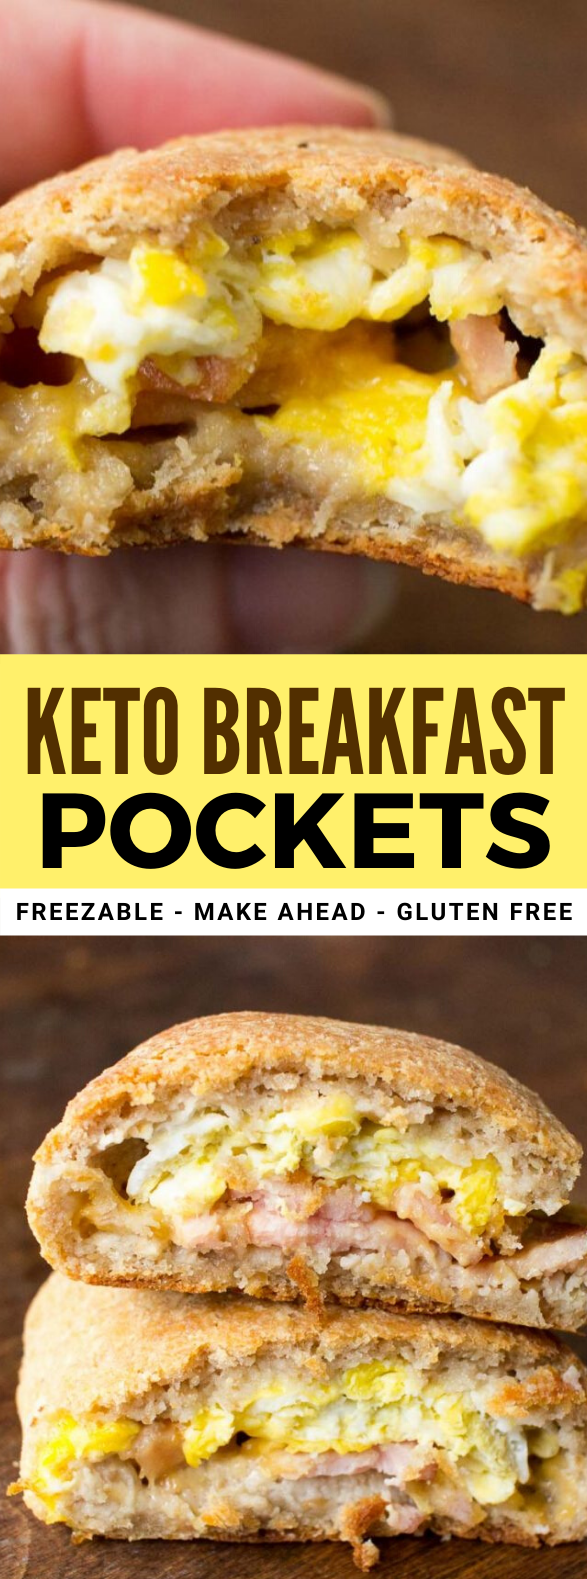 KETO BREAKFAST POCKETS – LOW CARB, GLUTEN FREE, THM S #healthy #diet